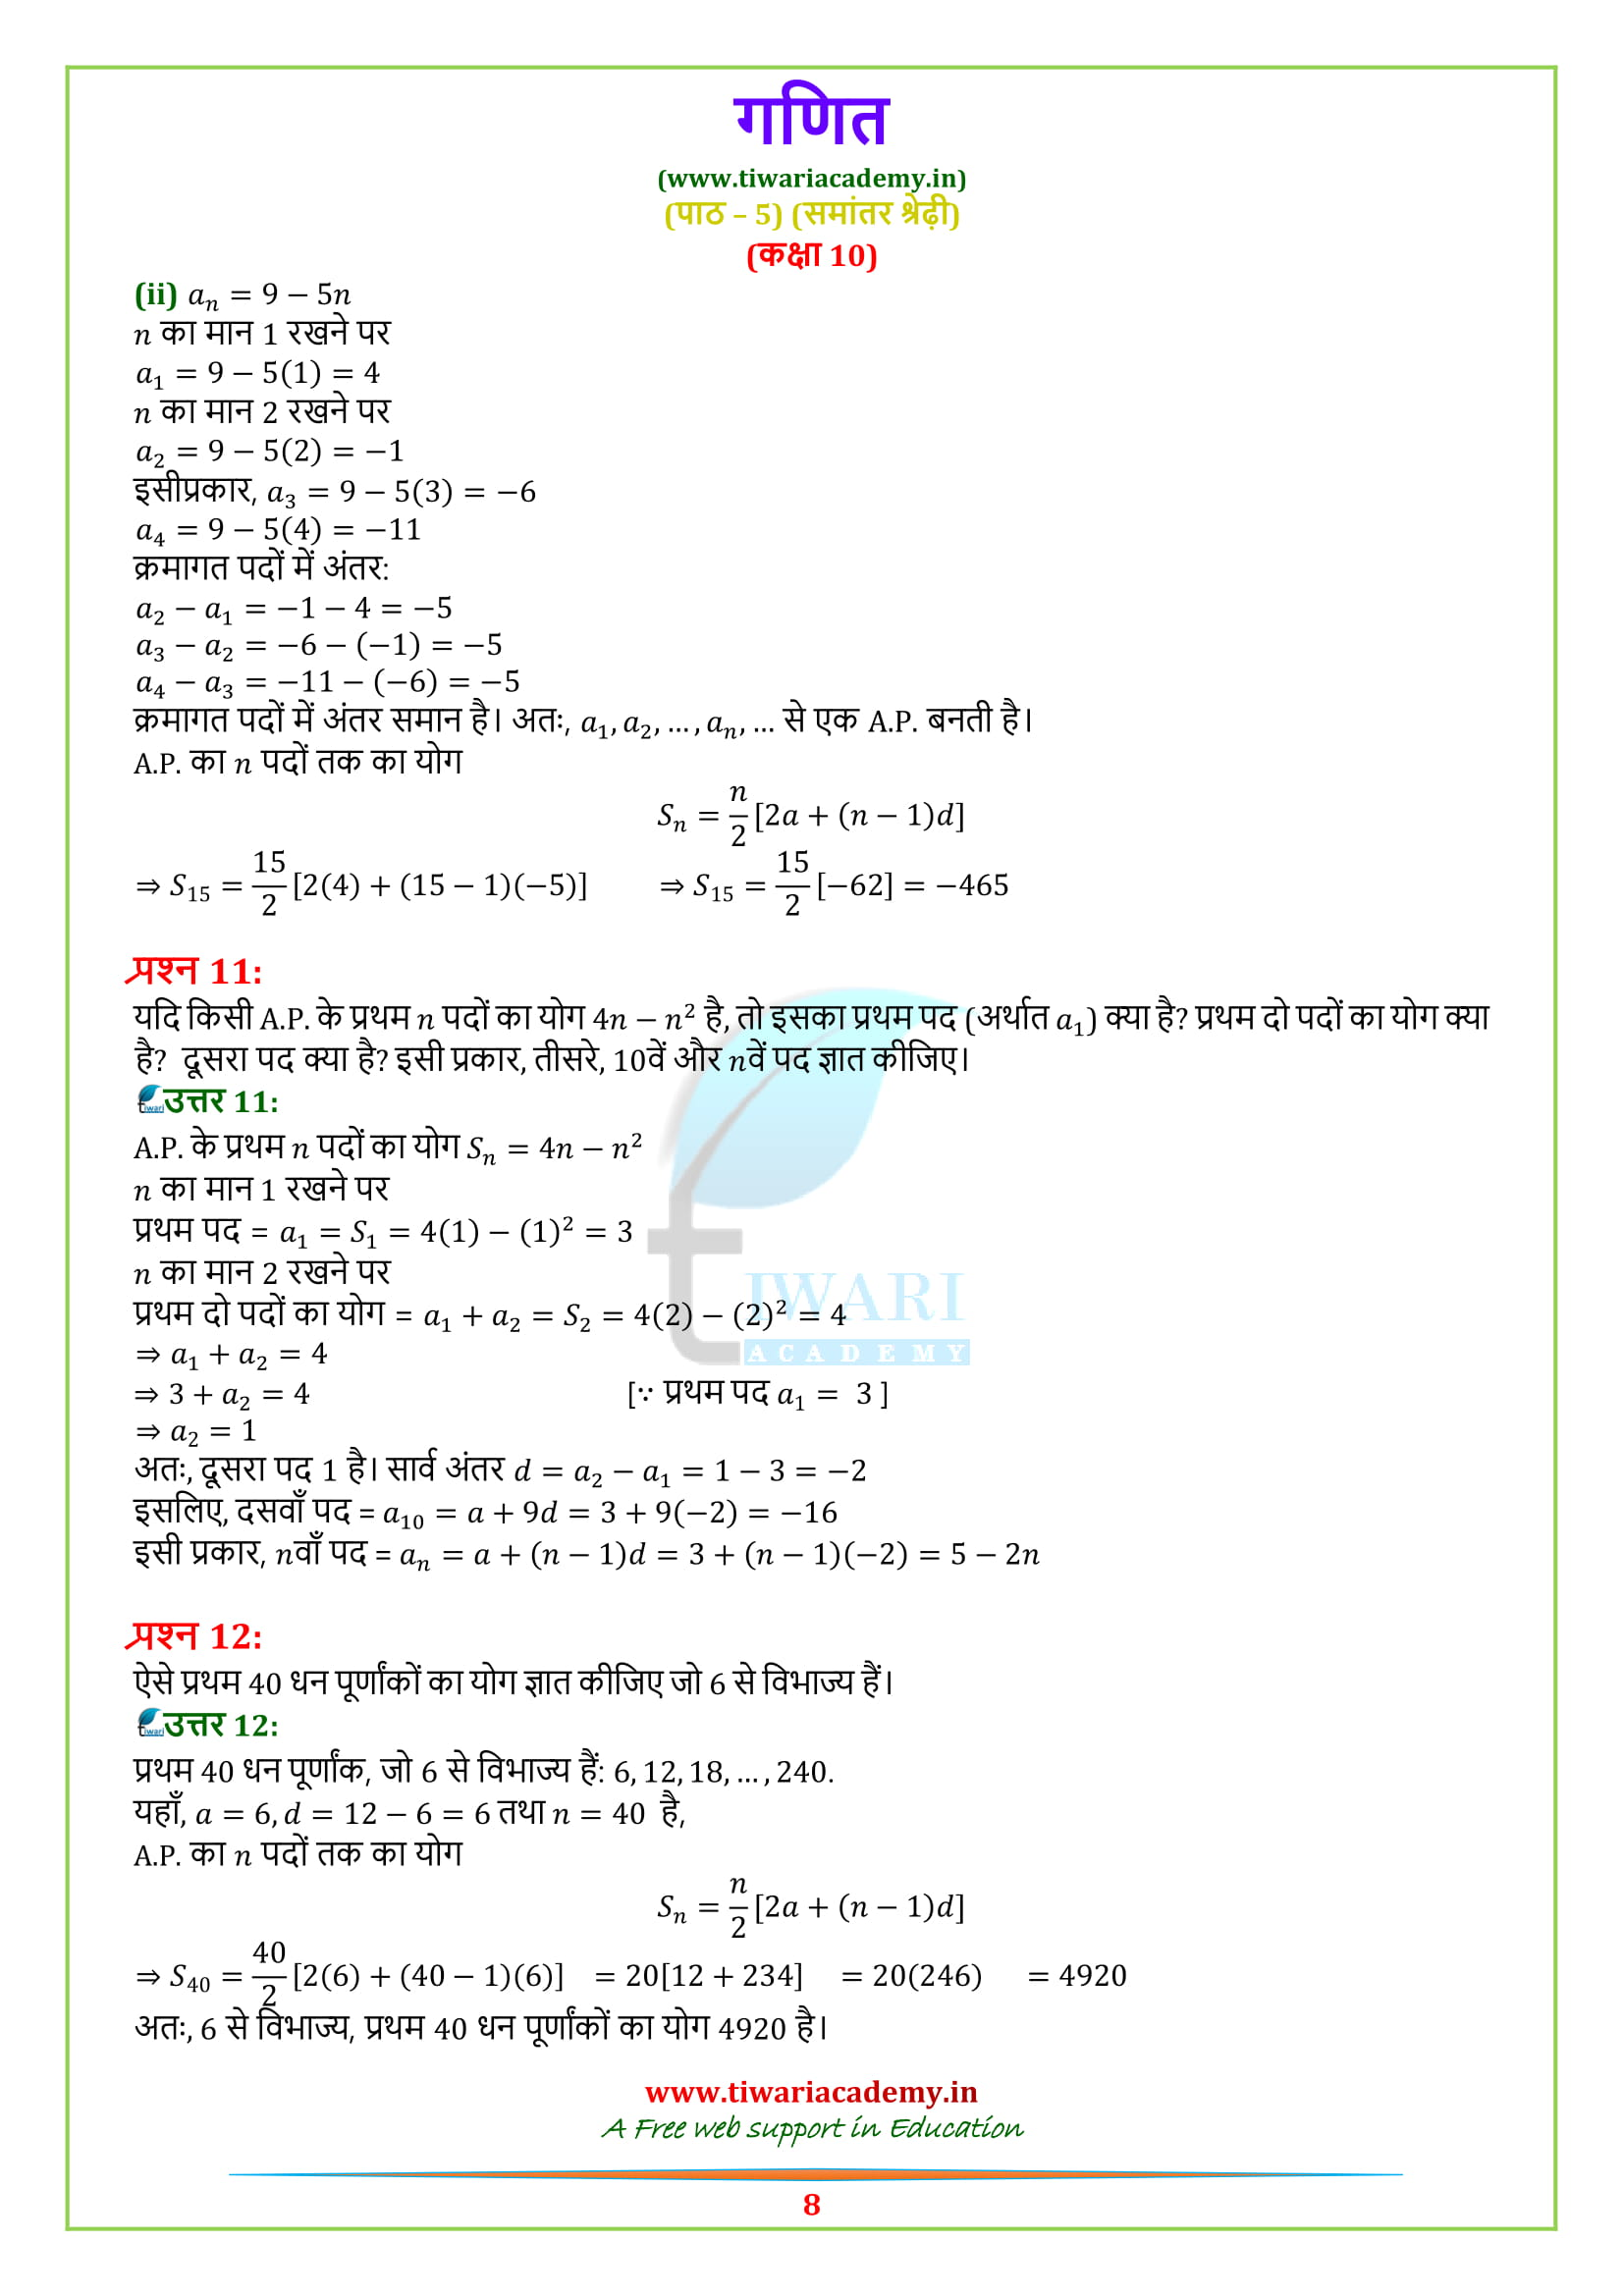 NCERT Solutions for Class 10 Maths Exercise 5.3 based on latest syllabus